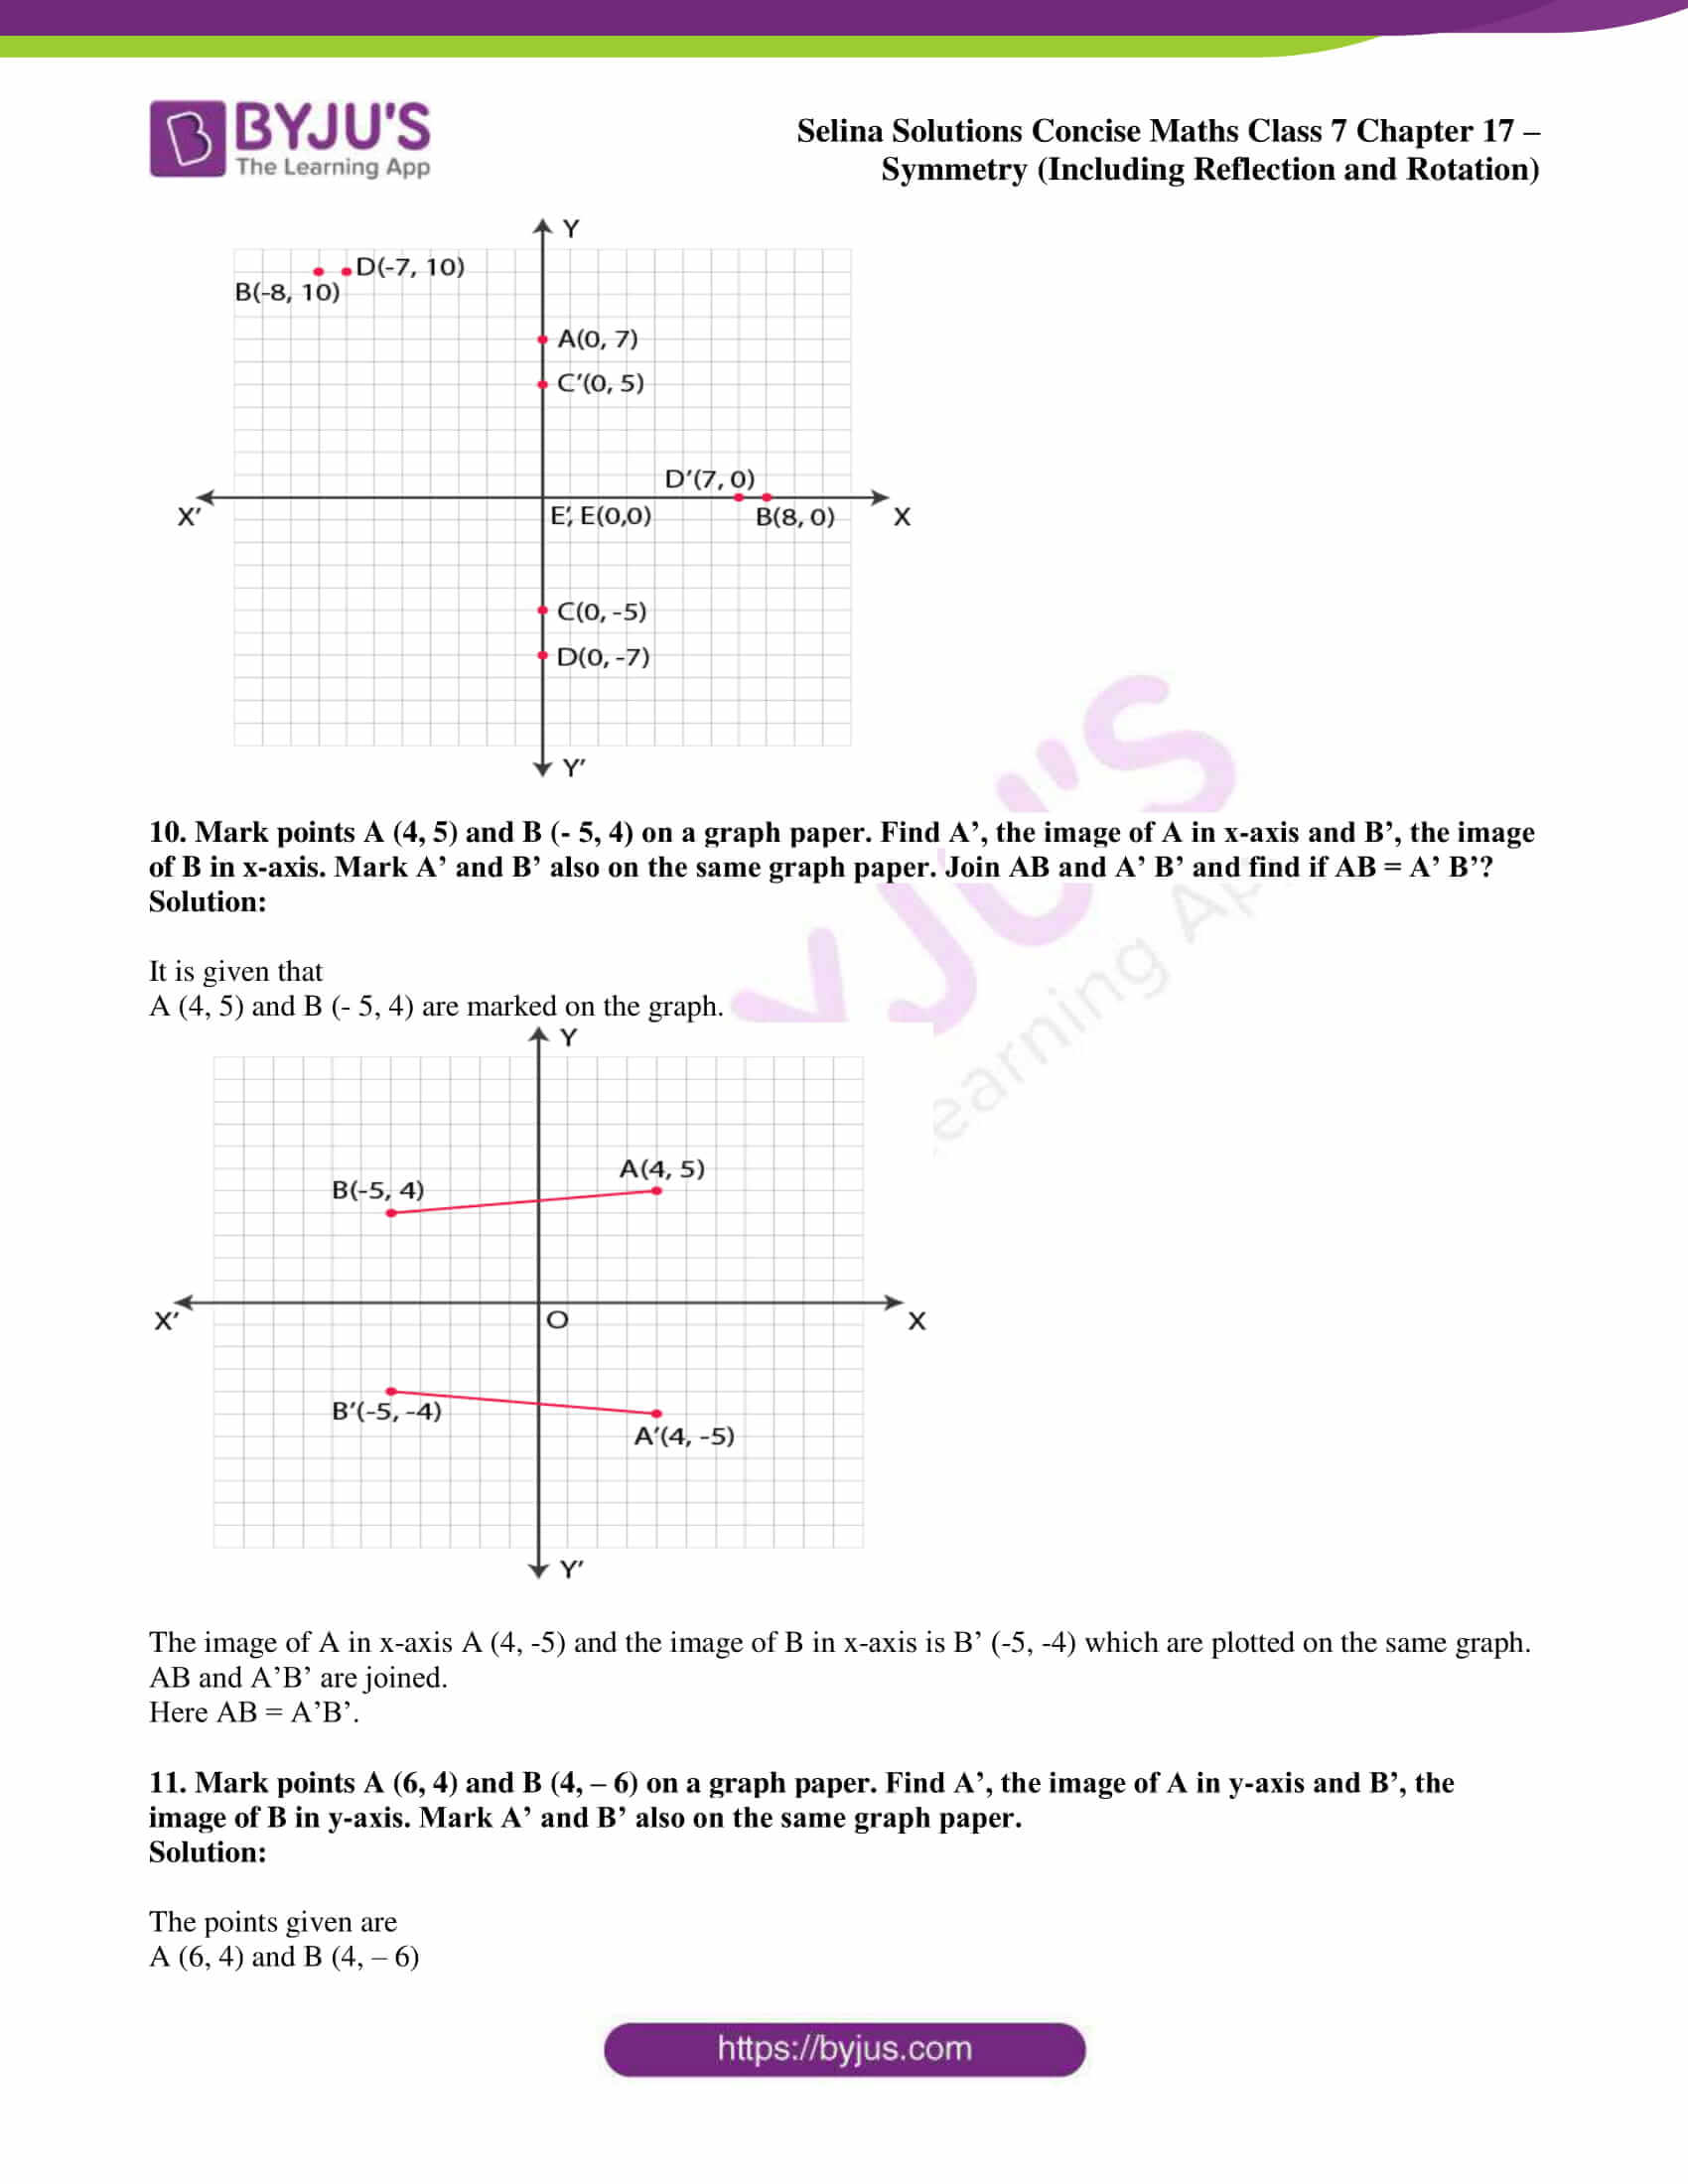 selina sol concise maths class 7 chapter 17 ex b 7